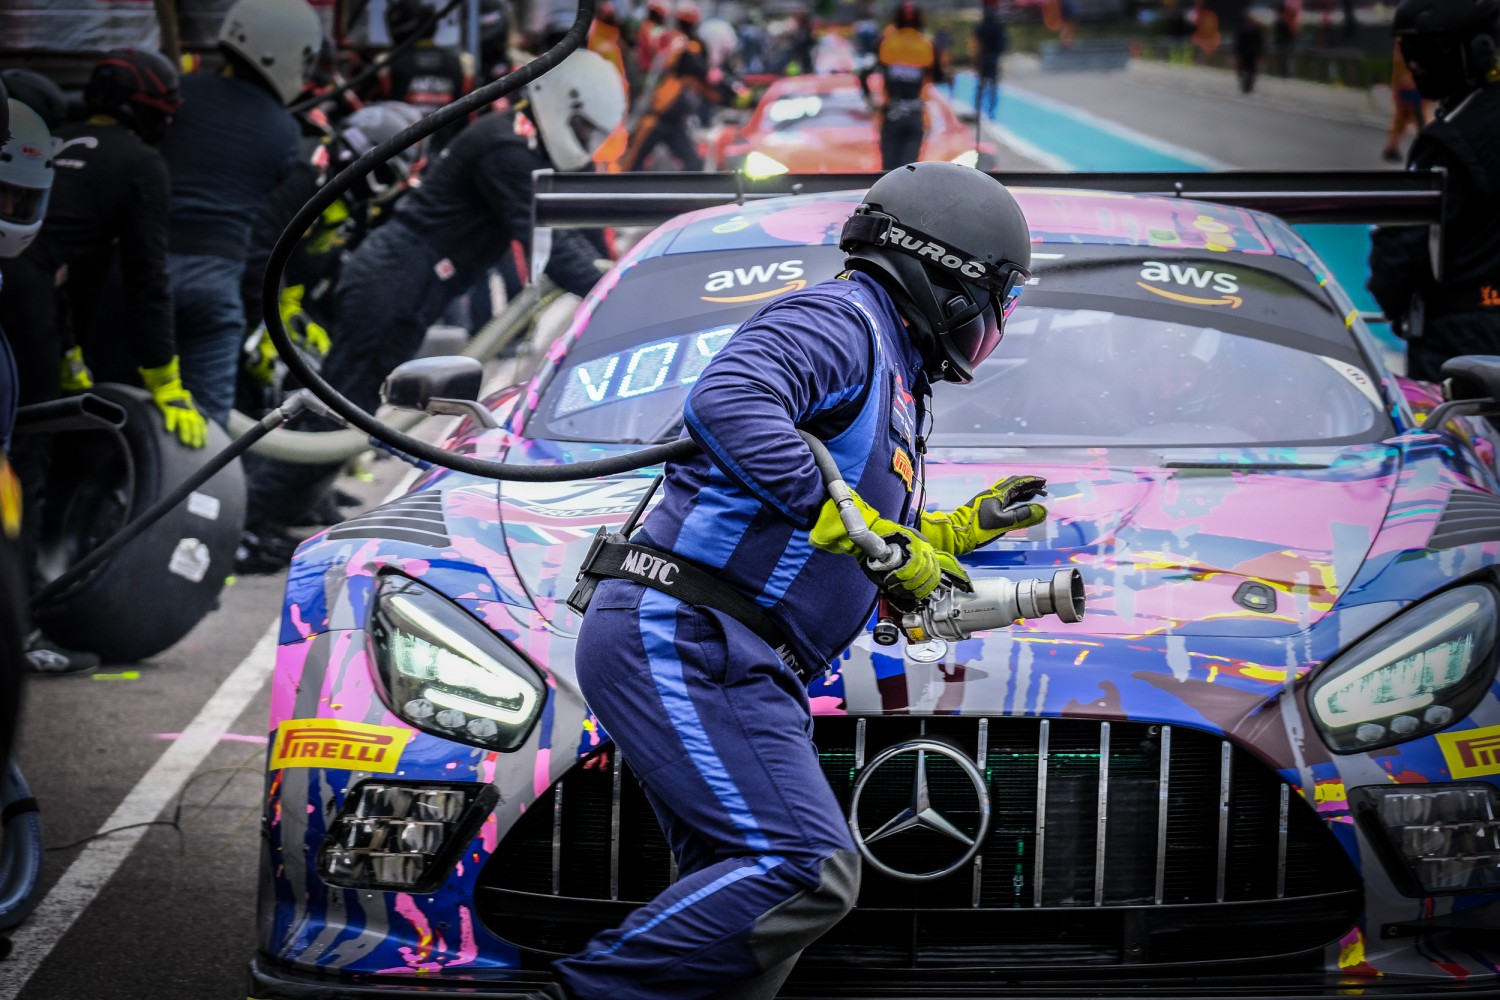 #74 Ram Racing GBR Mercedes-AMG GT3 Pro-Am Cup Tom Onslow-Cole GBR Martin Konrad AUT Remon Vos NDL, Pitlane, Race  | SRO / Dirk Bogaerts Photography